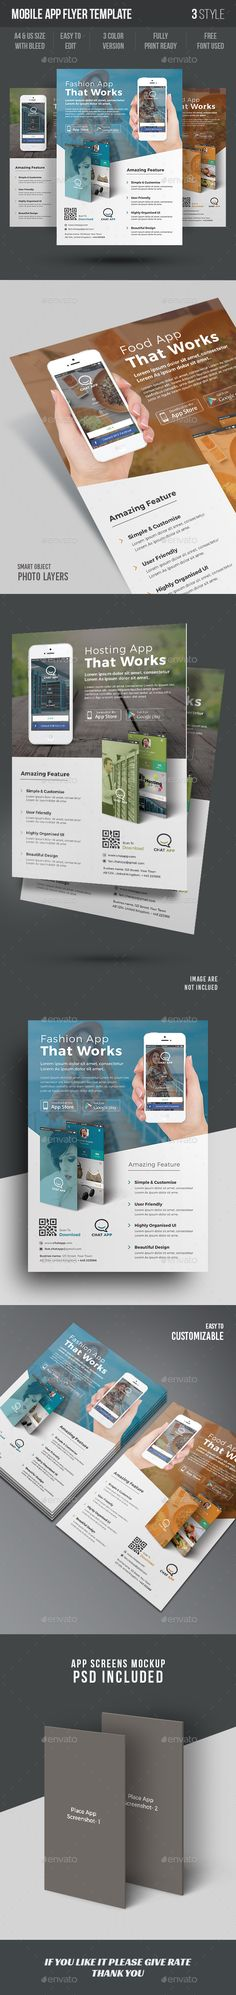 Mobile App Promotion Flyer Templates Flyer Template Mobile App